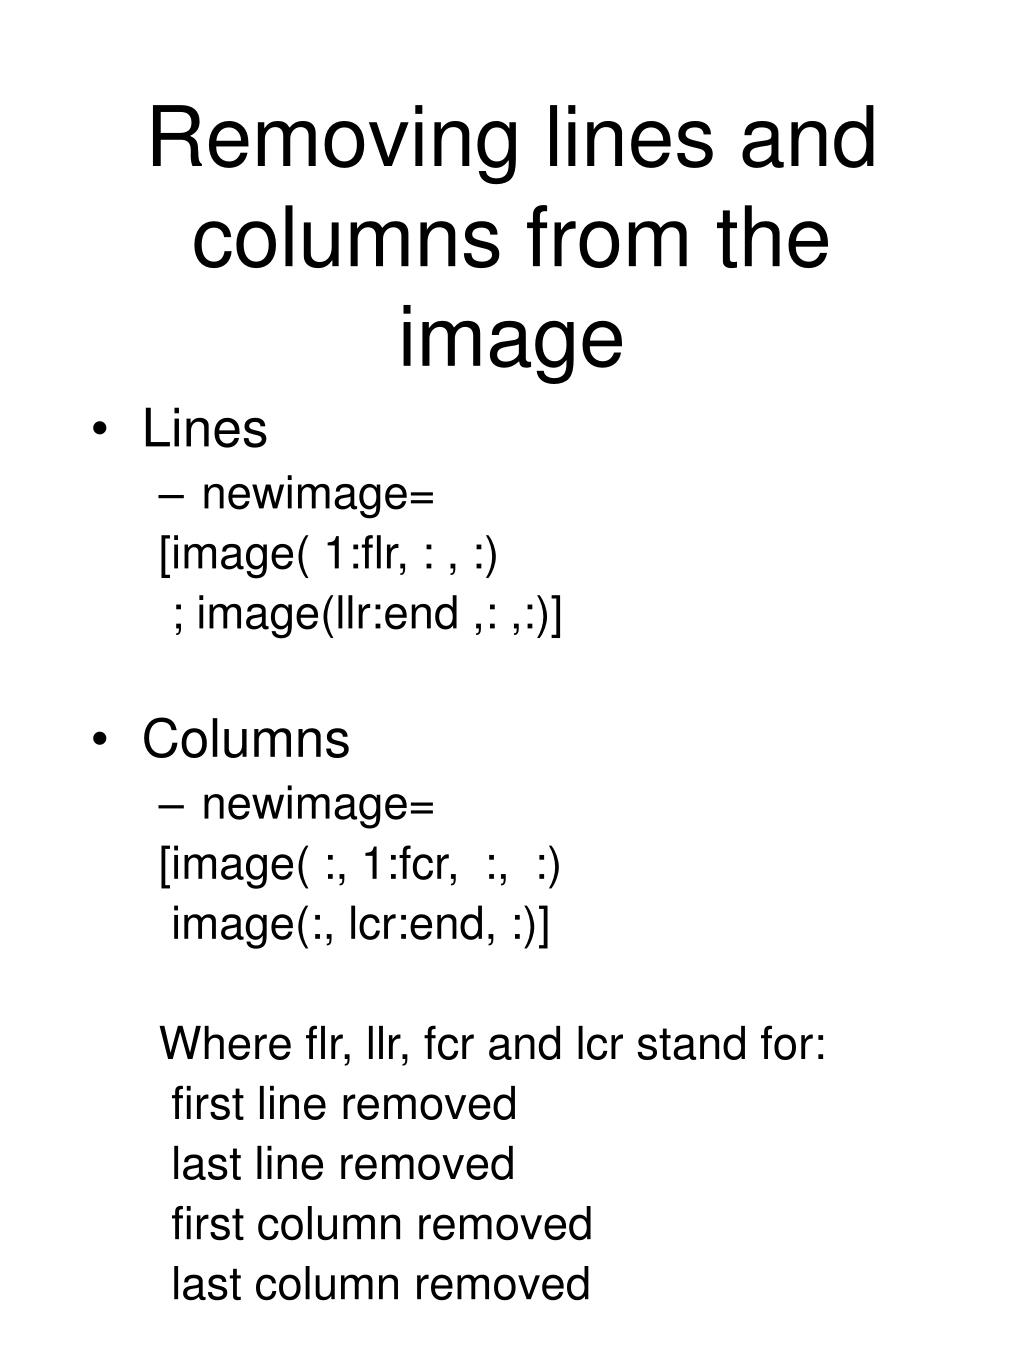 Removing lines and columns from the image